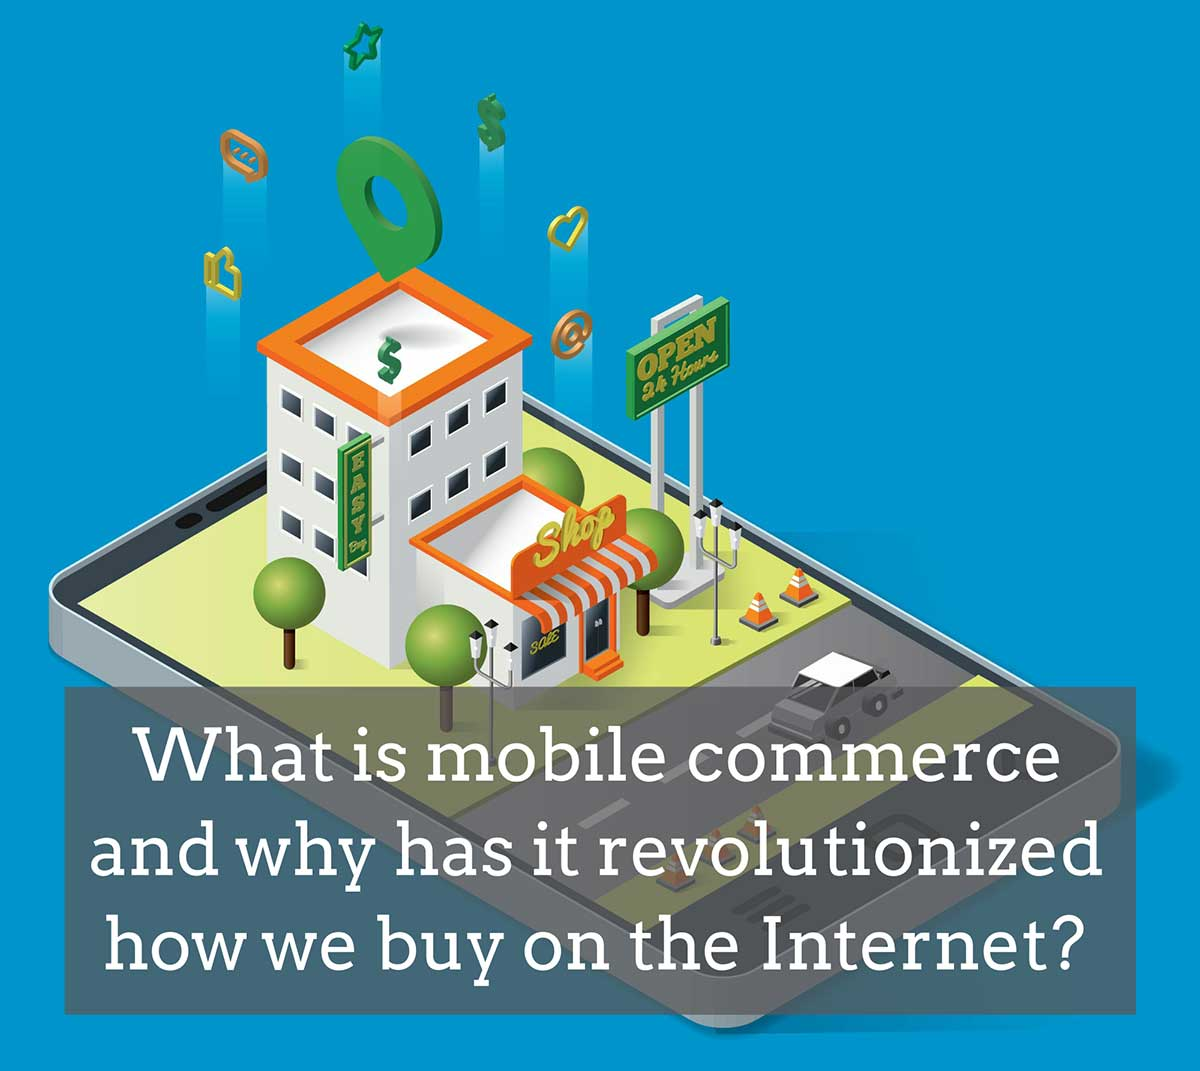 What is mobile commerce and why has it revolutionized how we buy on the Internet?